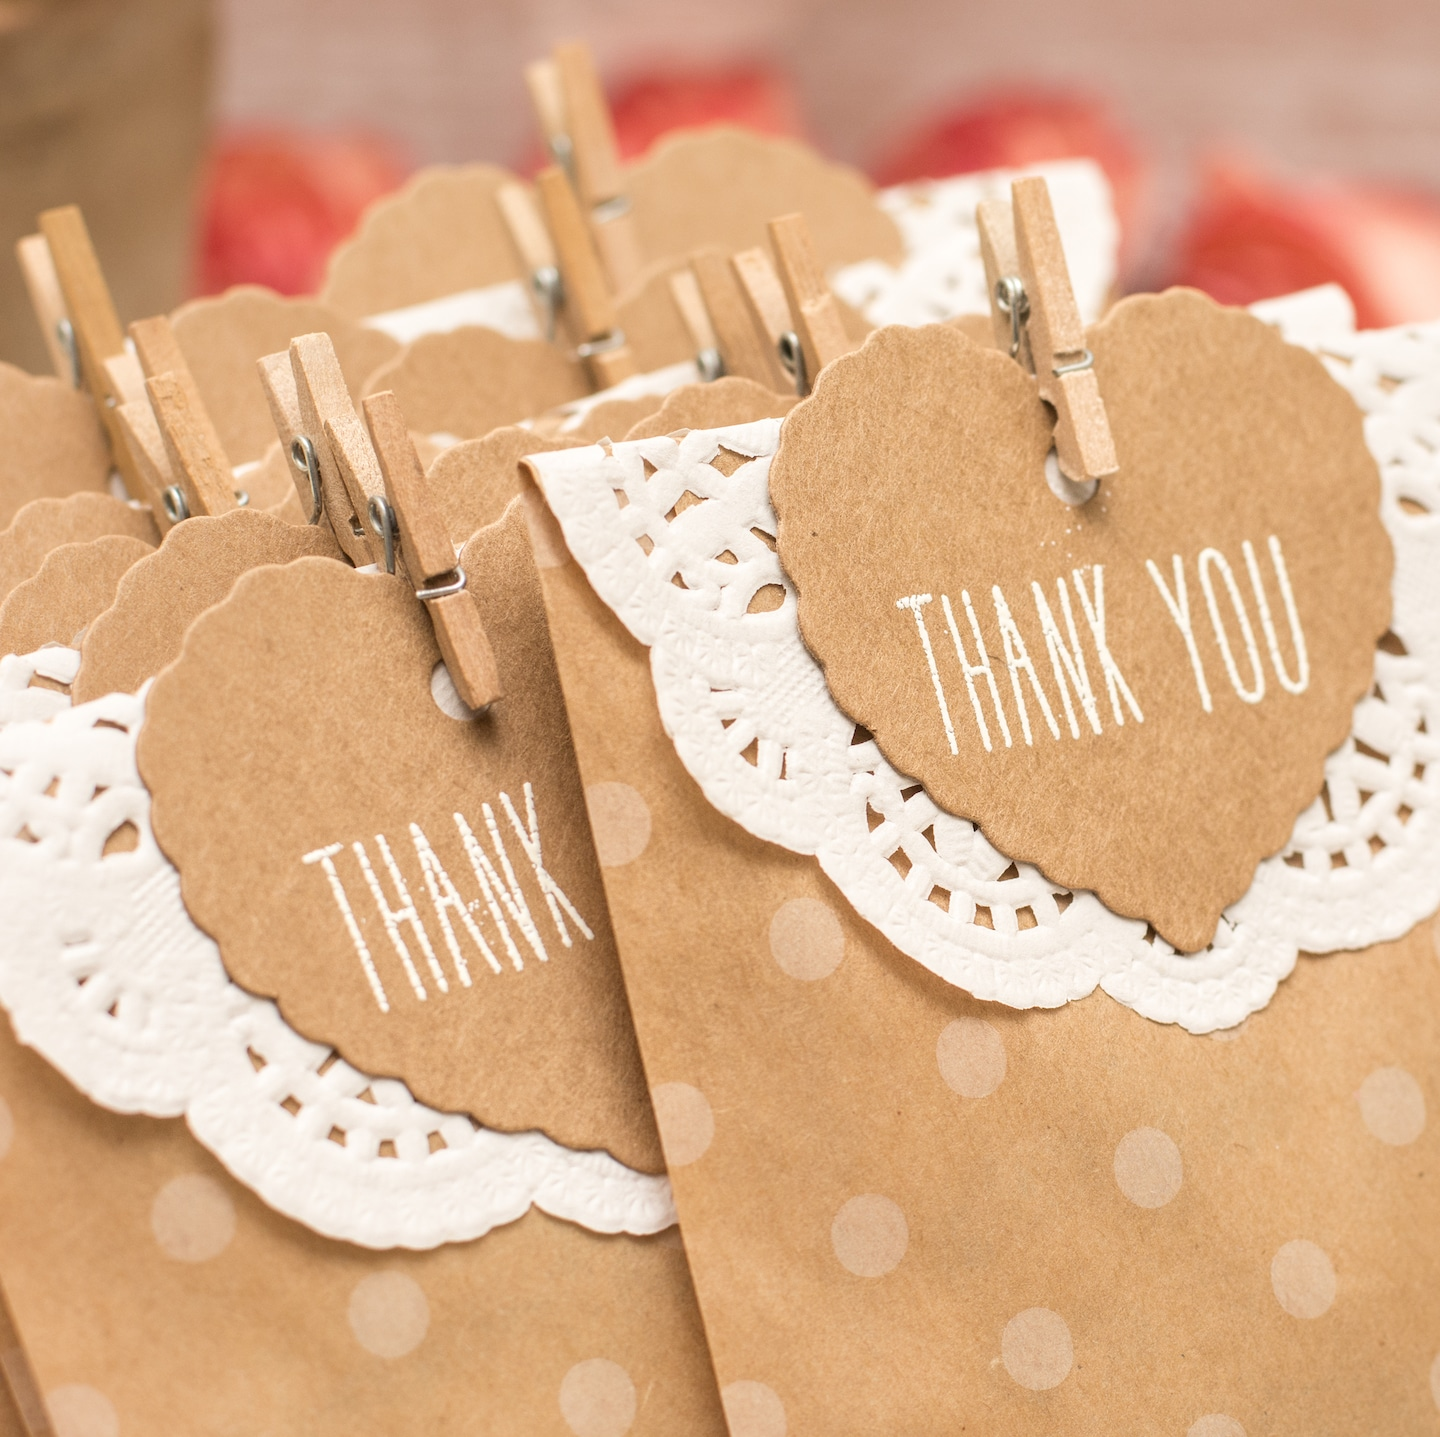 weddings-favours guests thank you presents